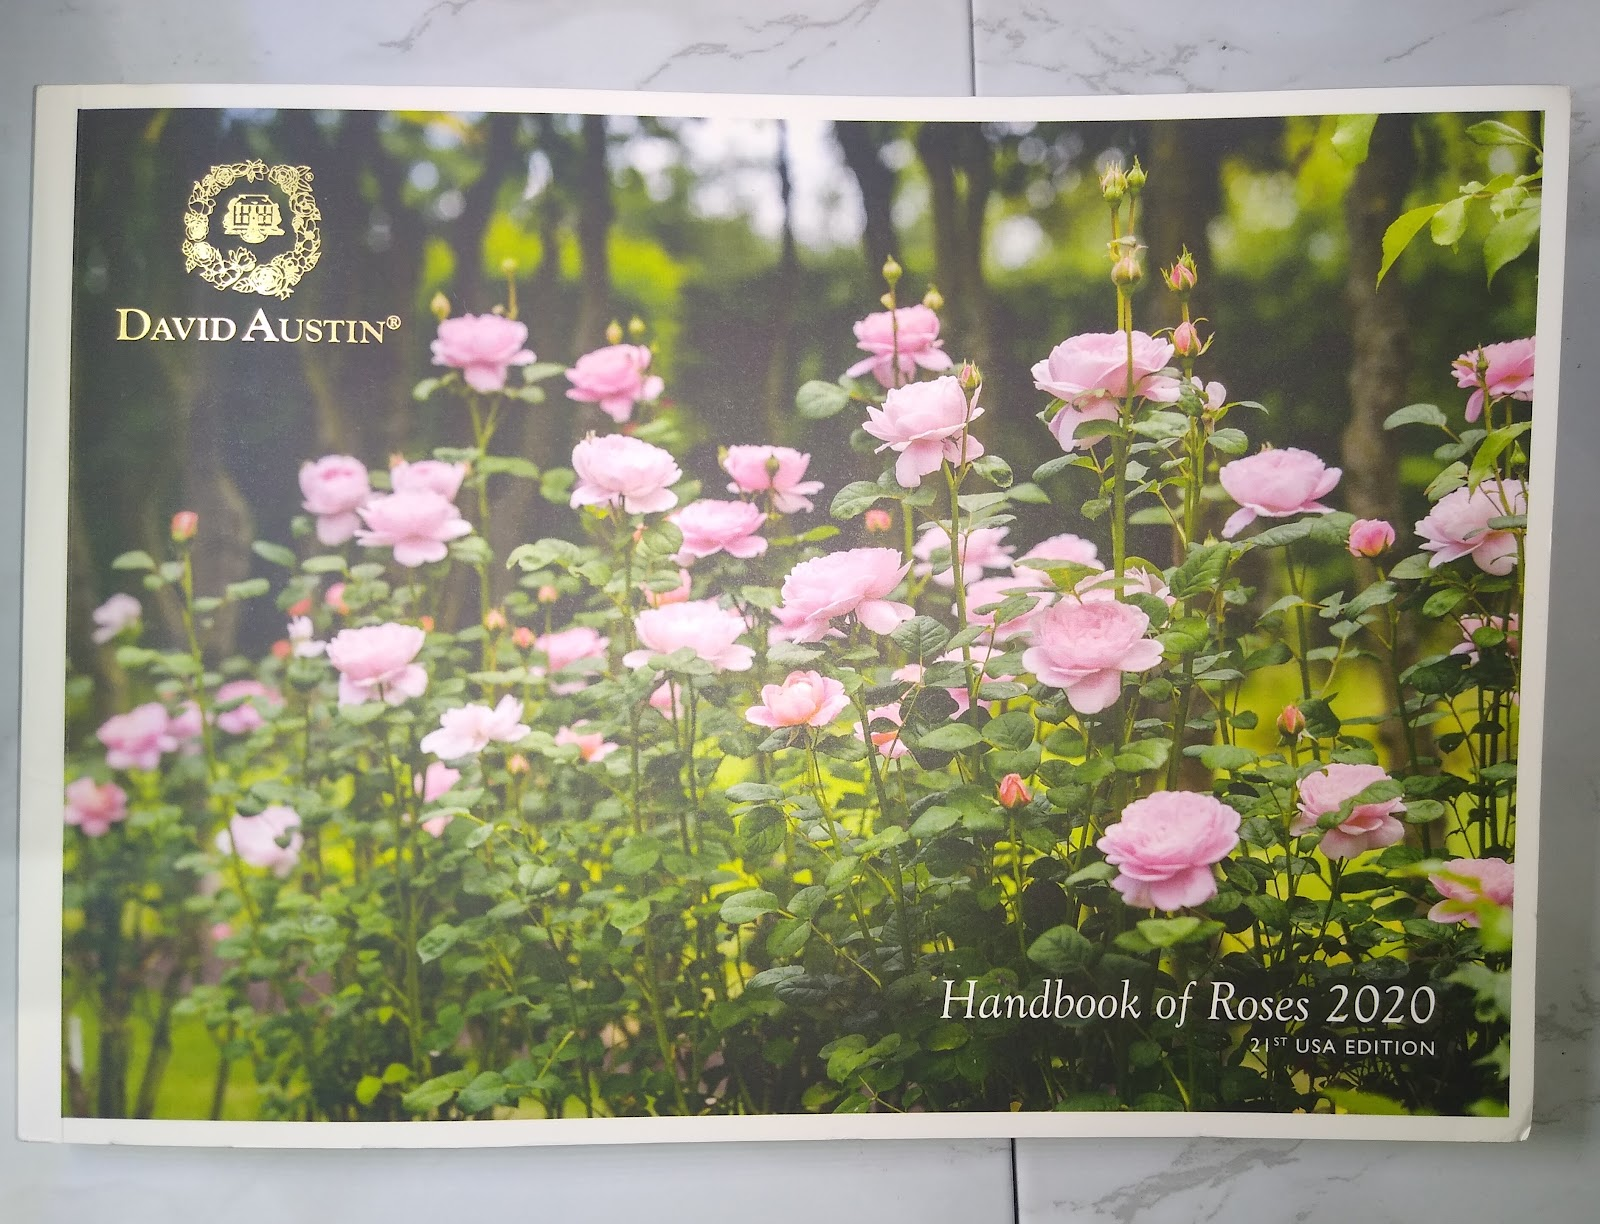 David Austin Rose catalog picture